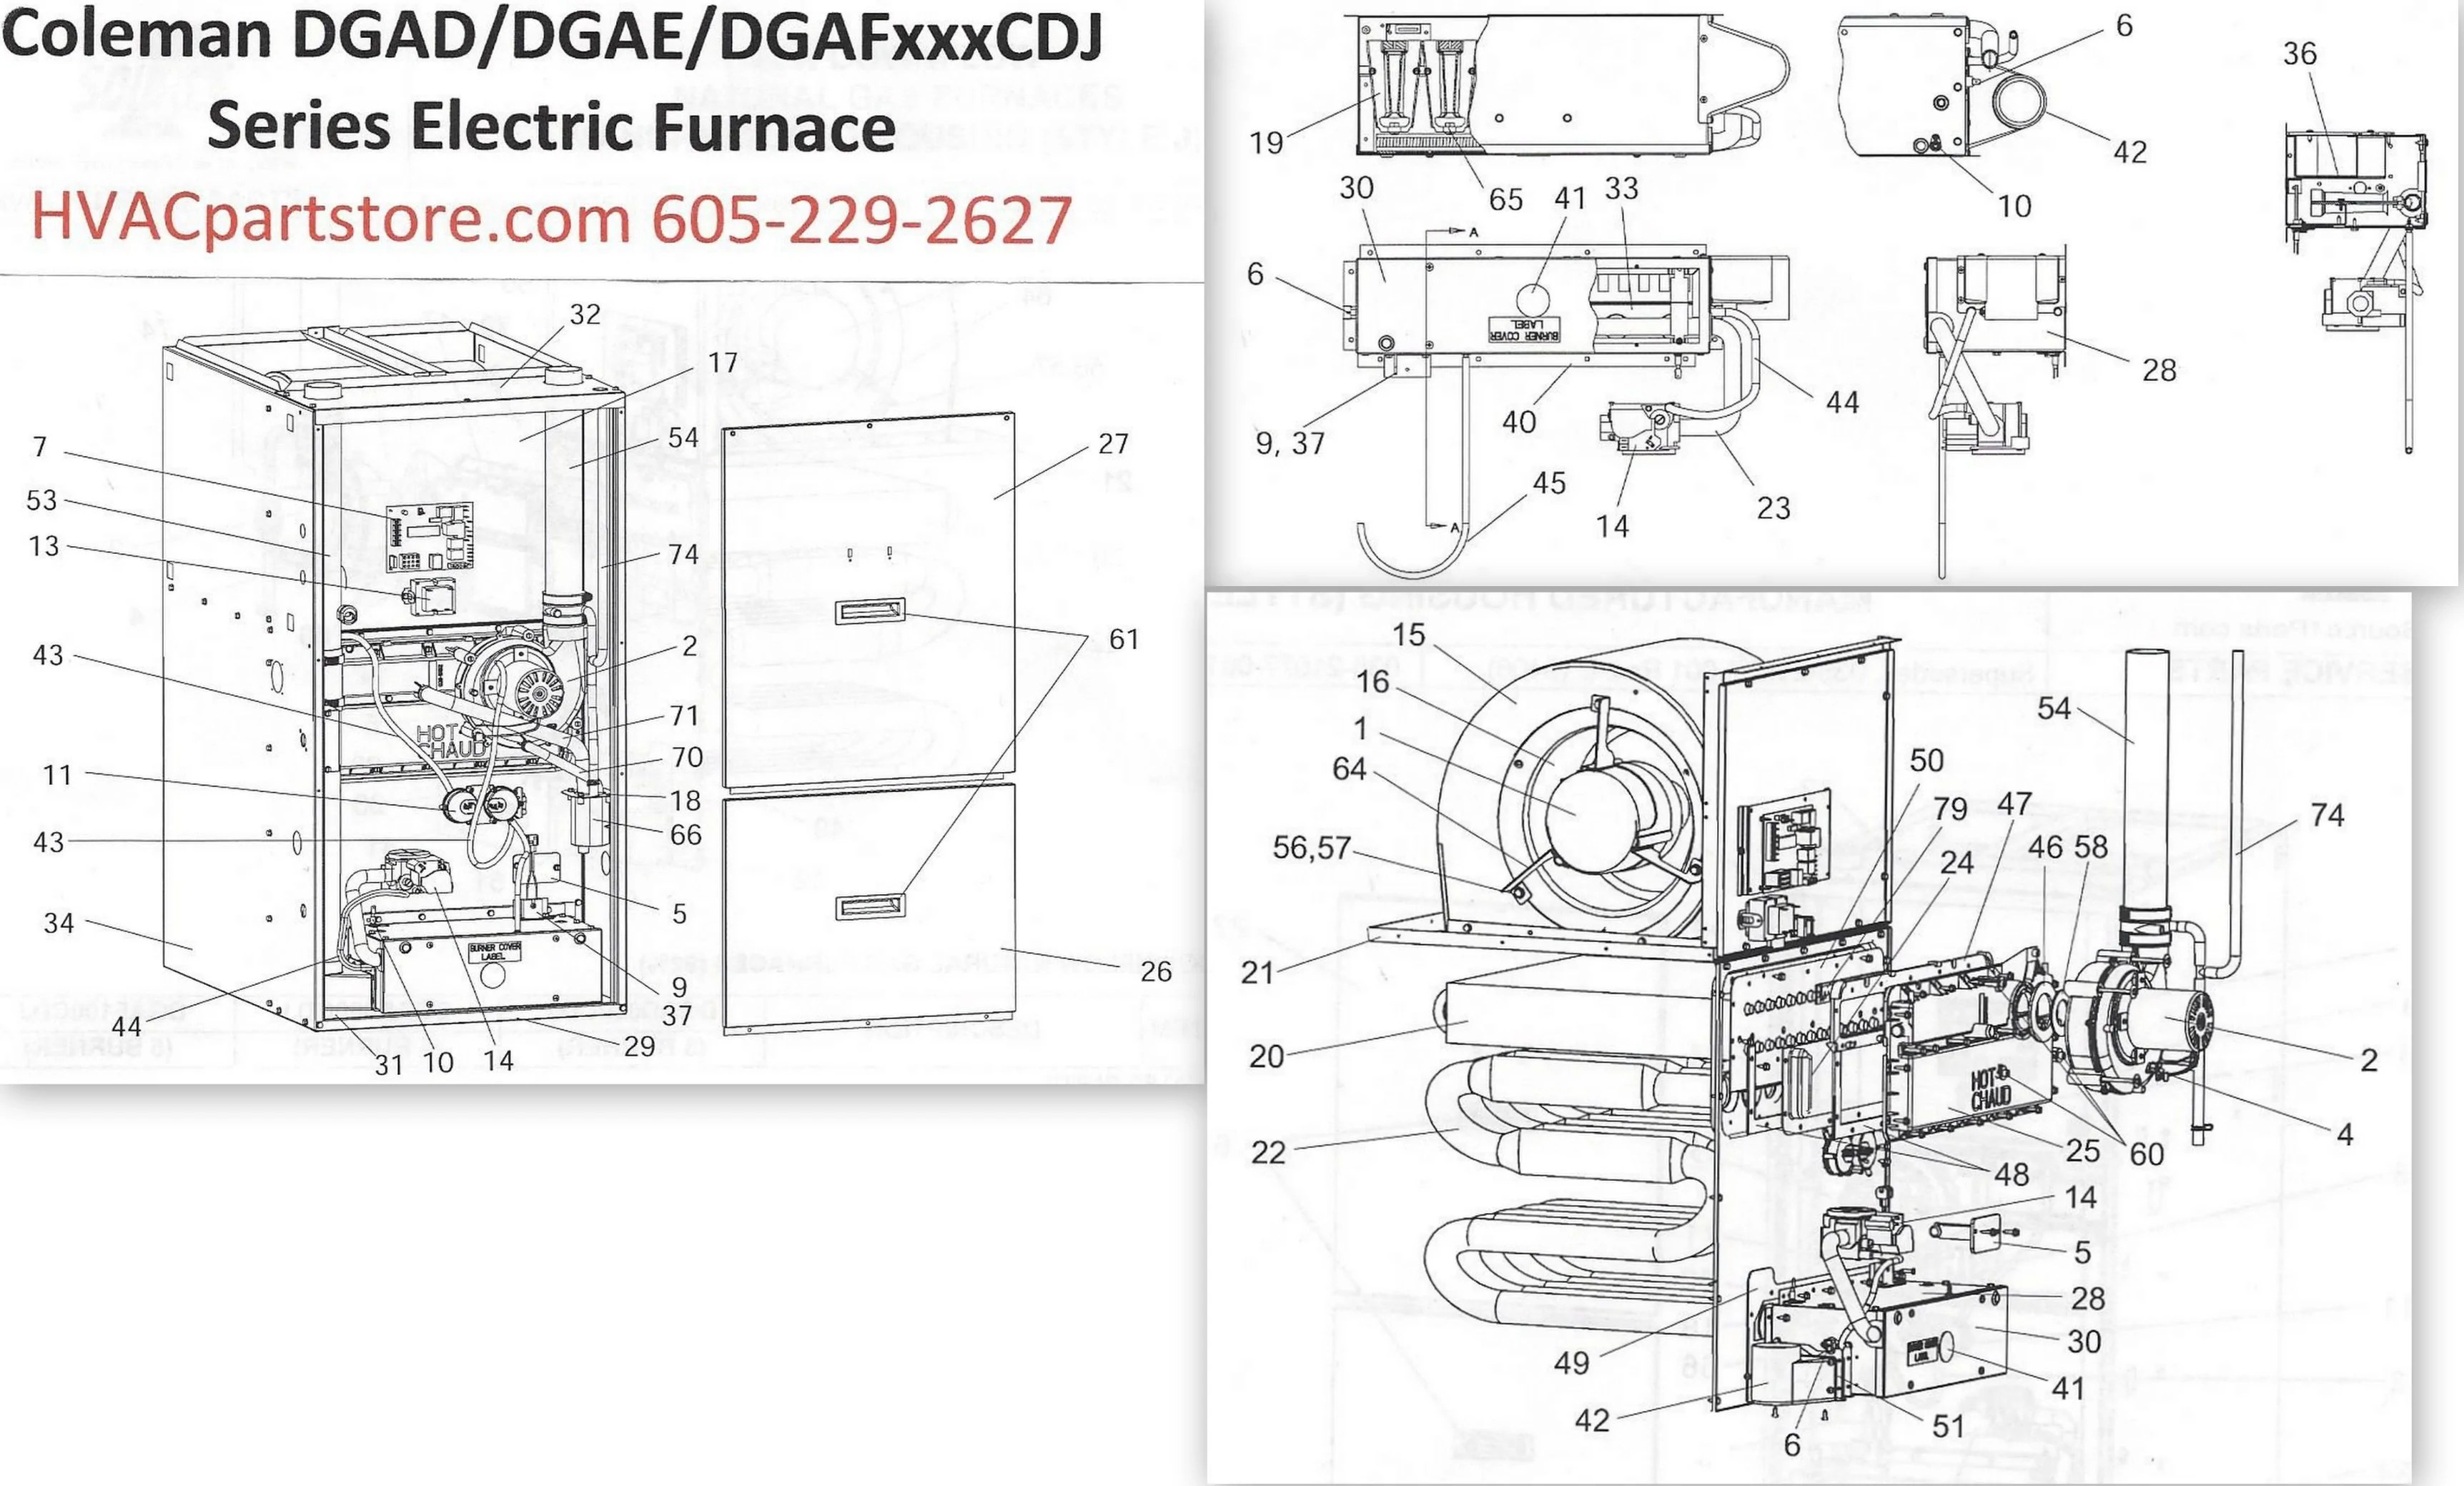 old heating furnace diagram 3 battery boat wiring dgaf100cdj coleman gas parts  tagged quotoval single